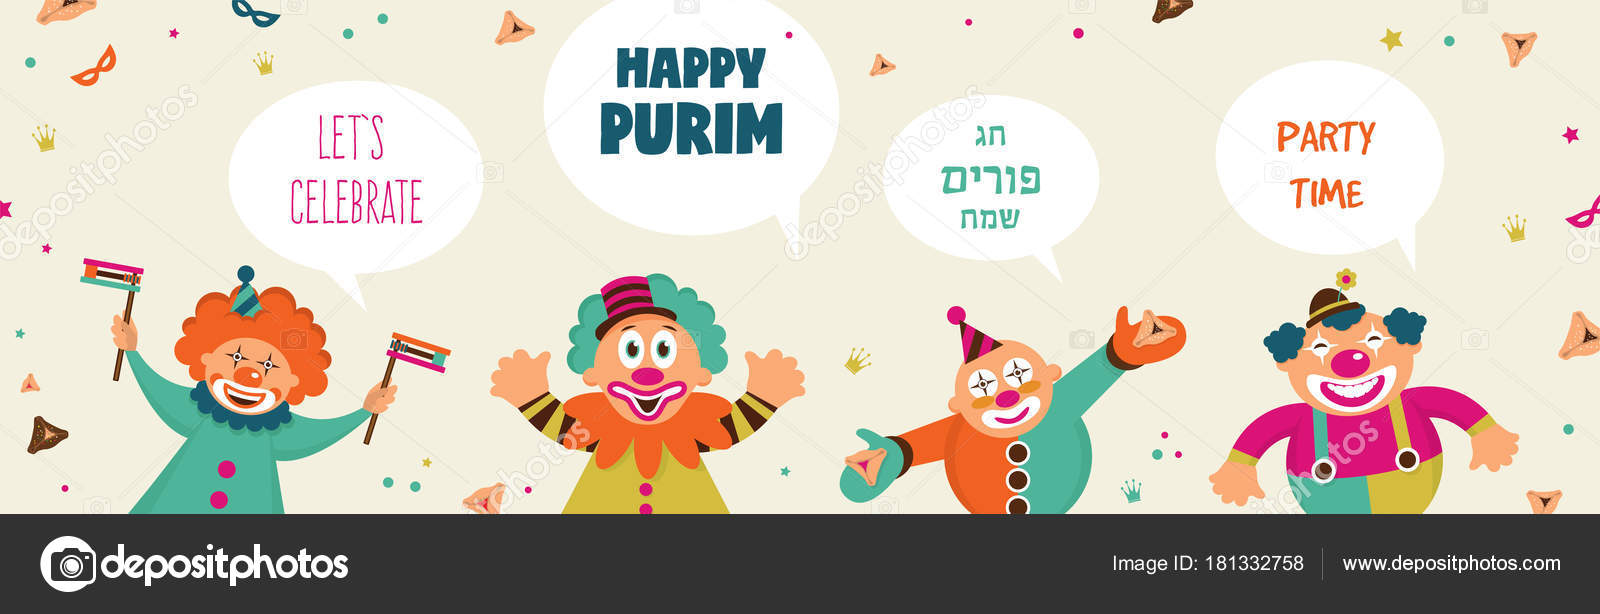 Purim banner template design jewish holiday vector illustration purim banner template design jewish holiday vector illustration happy purim in hebrew stock kristyandbryce Images